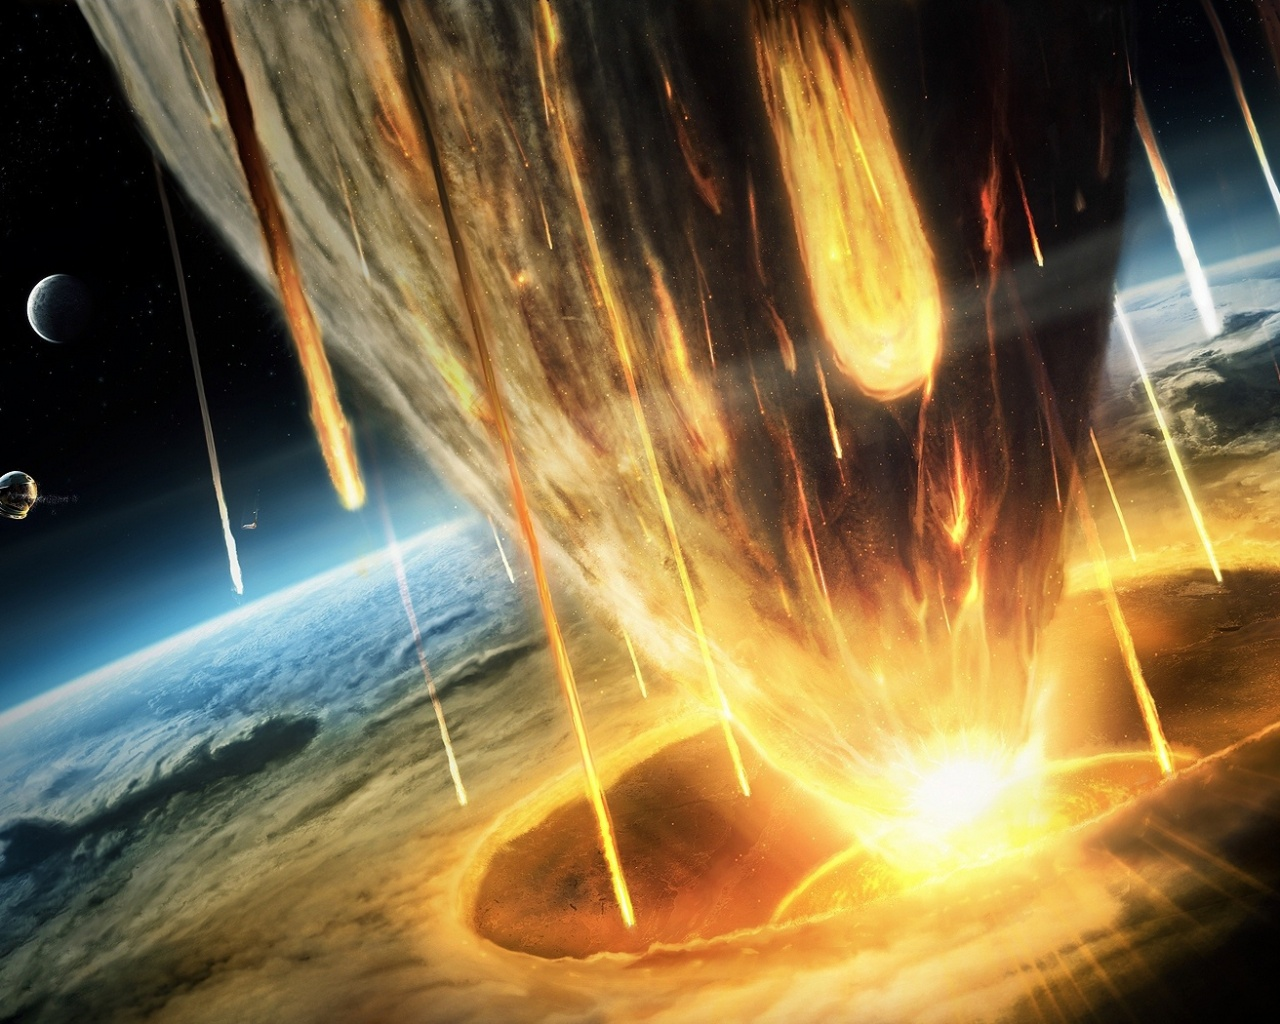 The fall of an asteroid desktop wallpapers Download